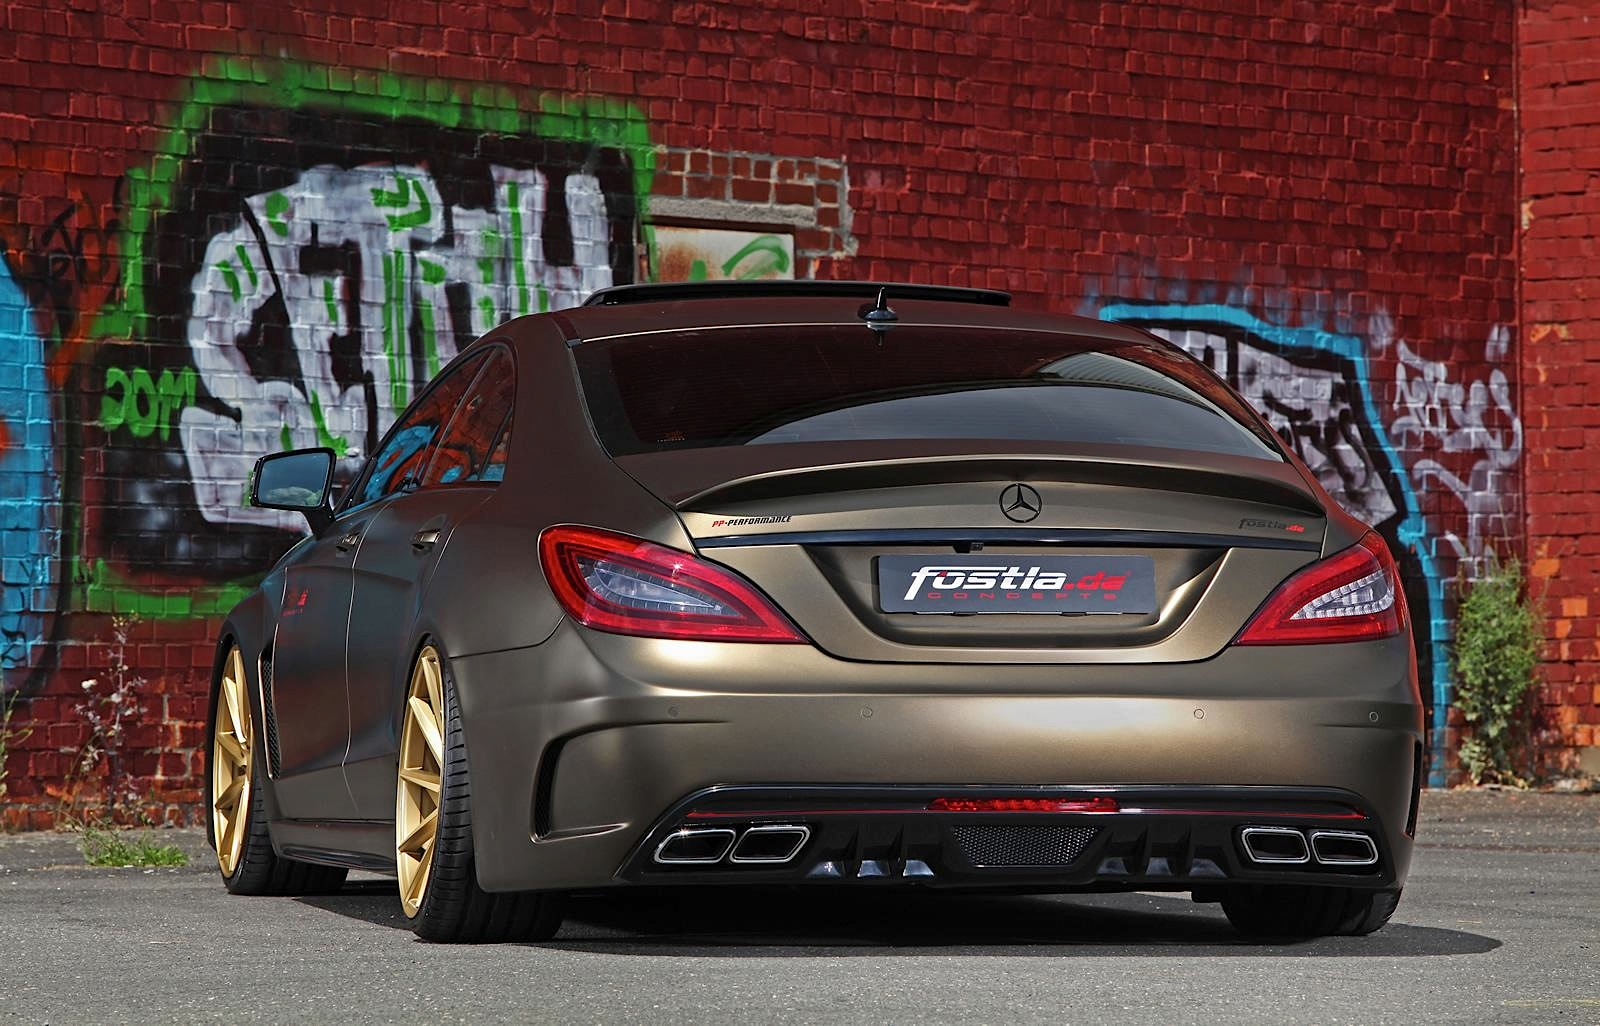 Stanced Mercedes Benz Cls By Fostla Is A Bit Too Much